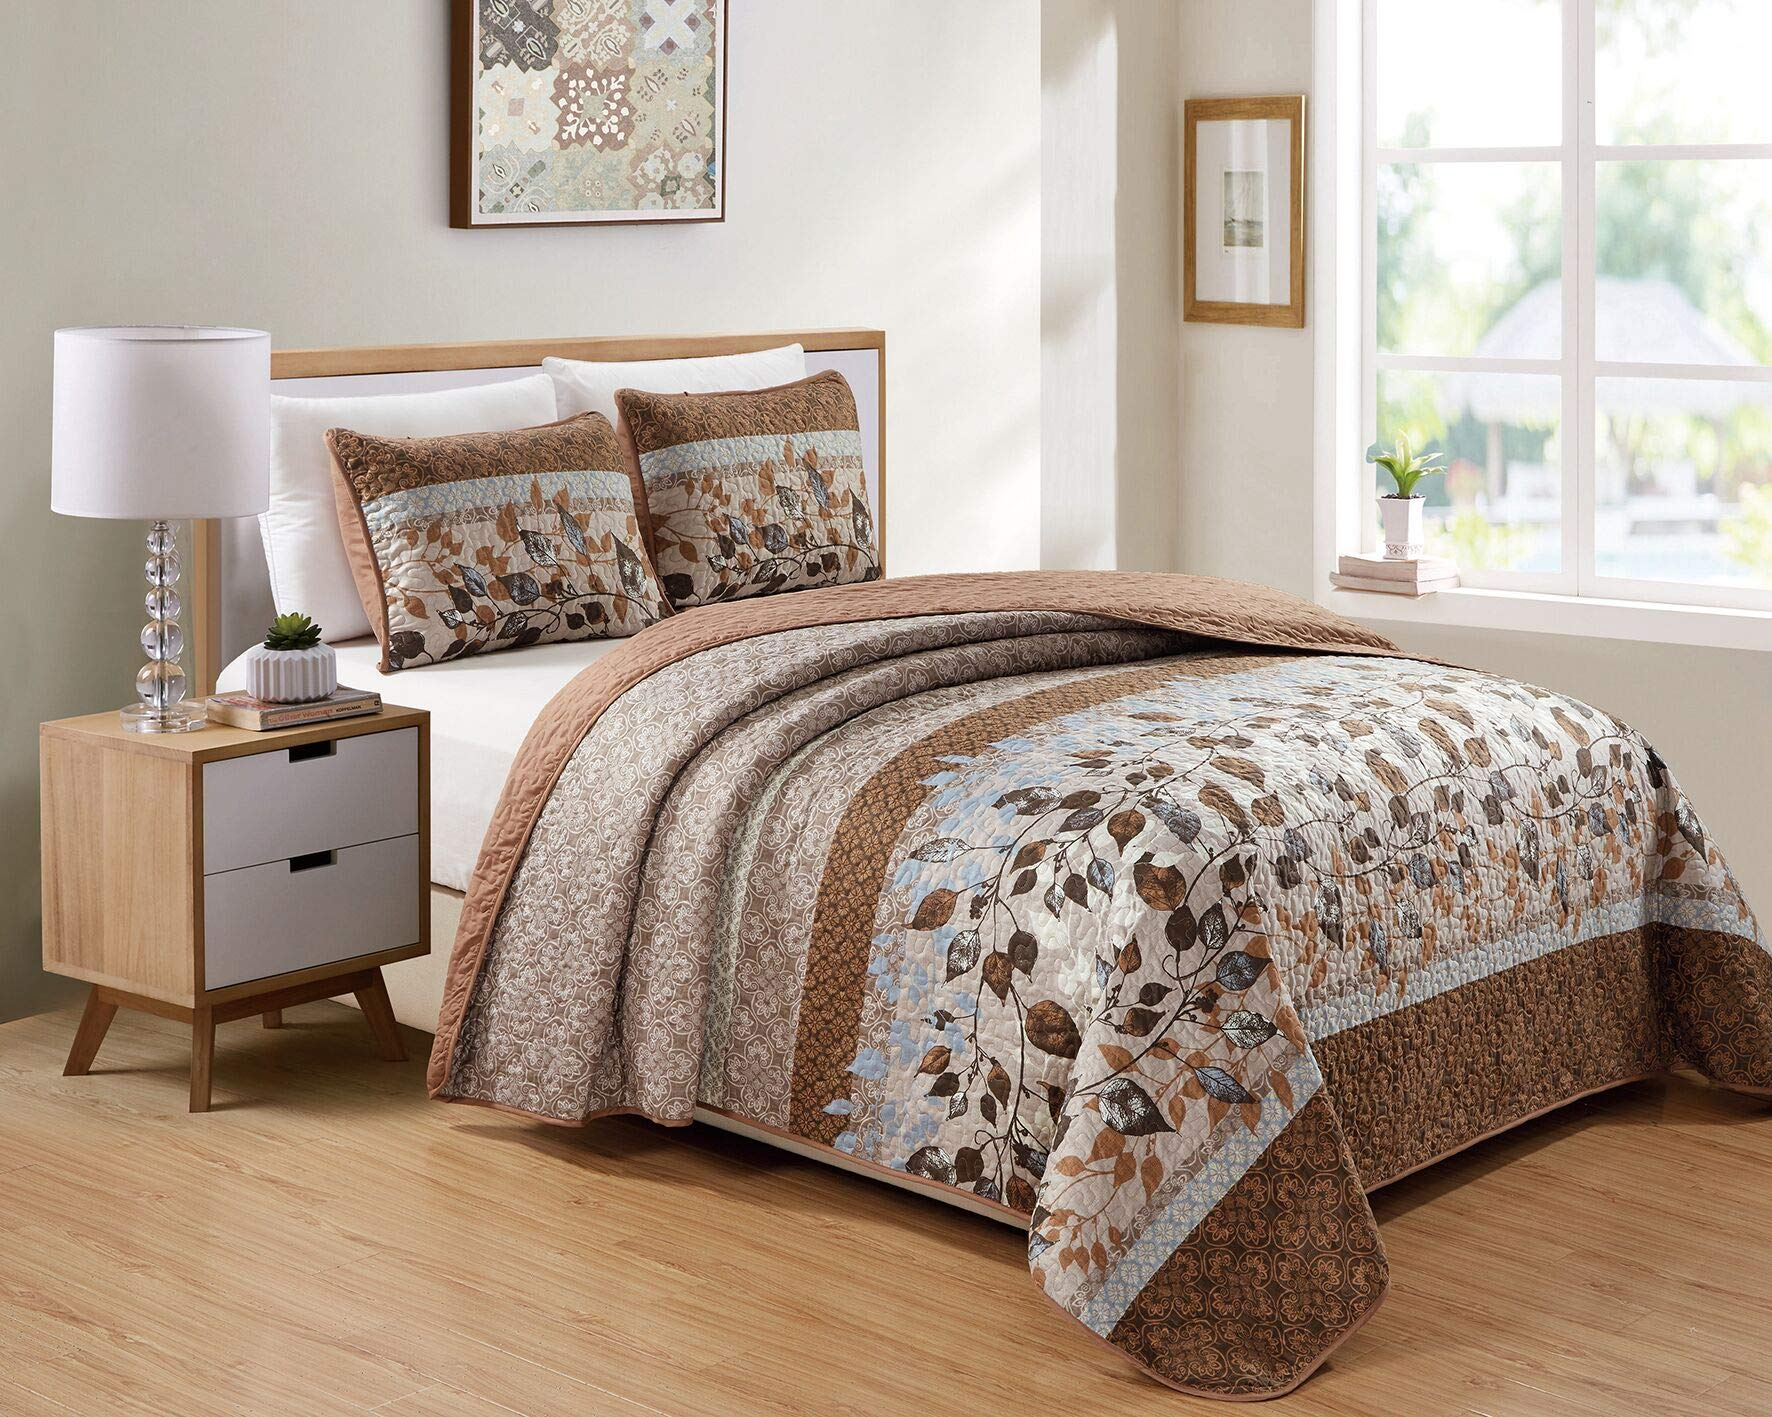 Kids Zone Home Linen 2 Piece Twin/Twin Extra Long Over Size Bedspread Set Brown Tan Sky Blue Leaves White by Kids Zone Home Linen